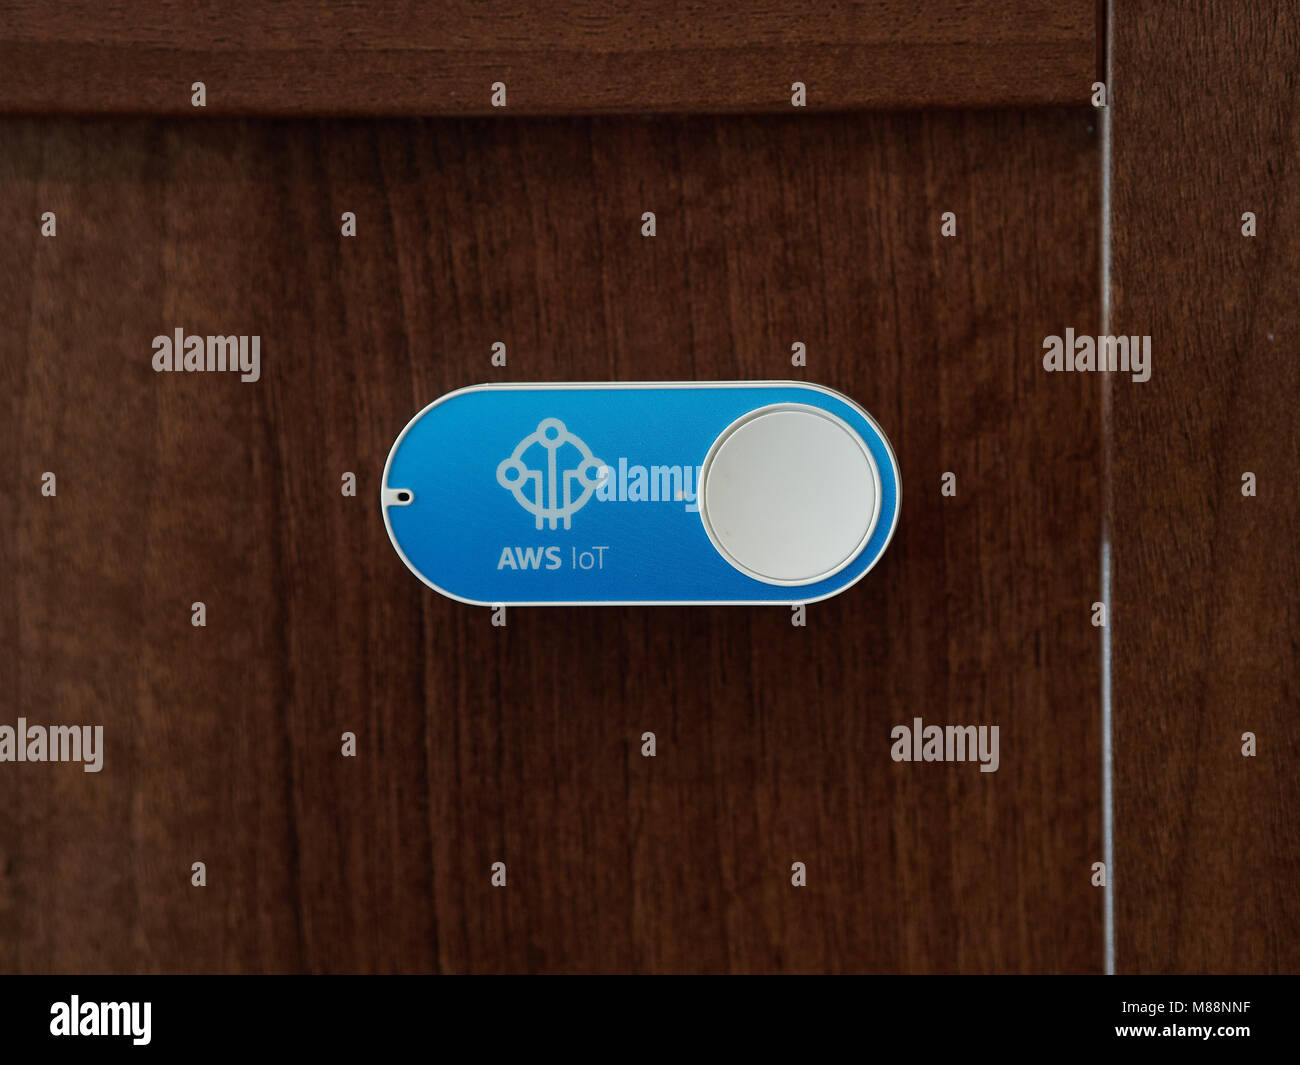 Amazon AWS Dash button - connected IoT device for automatic tasks or purchases. Shown on a wooden door. - Stock Image